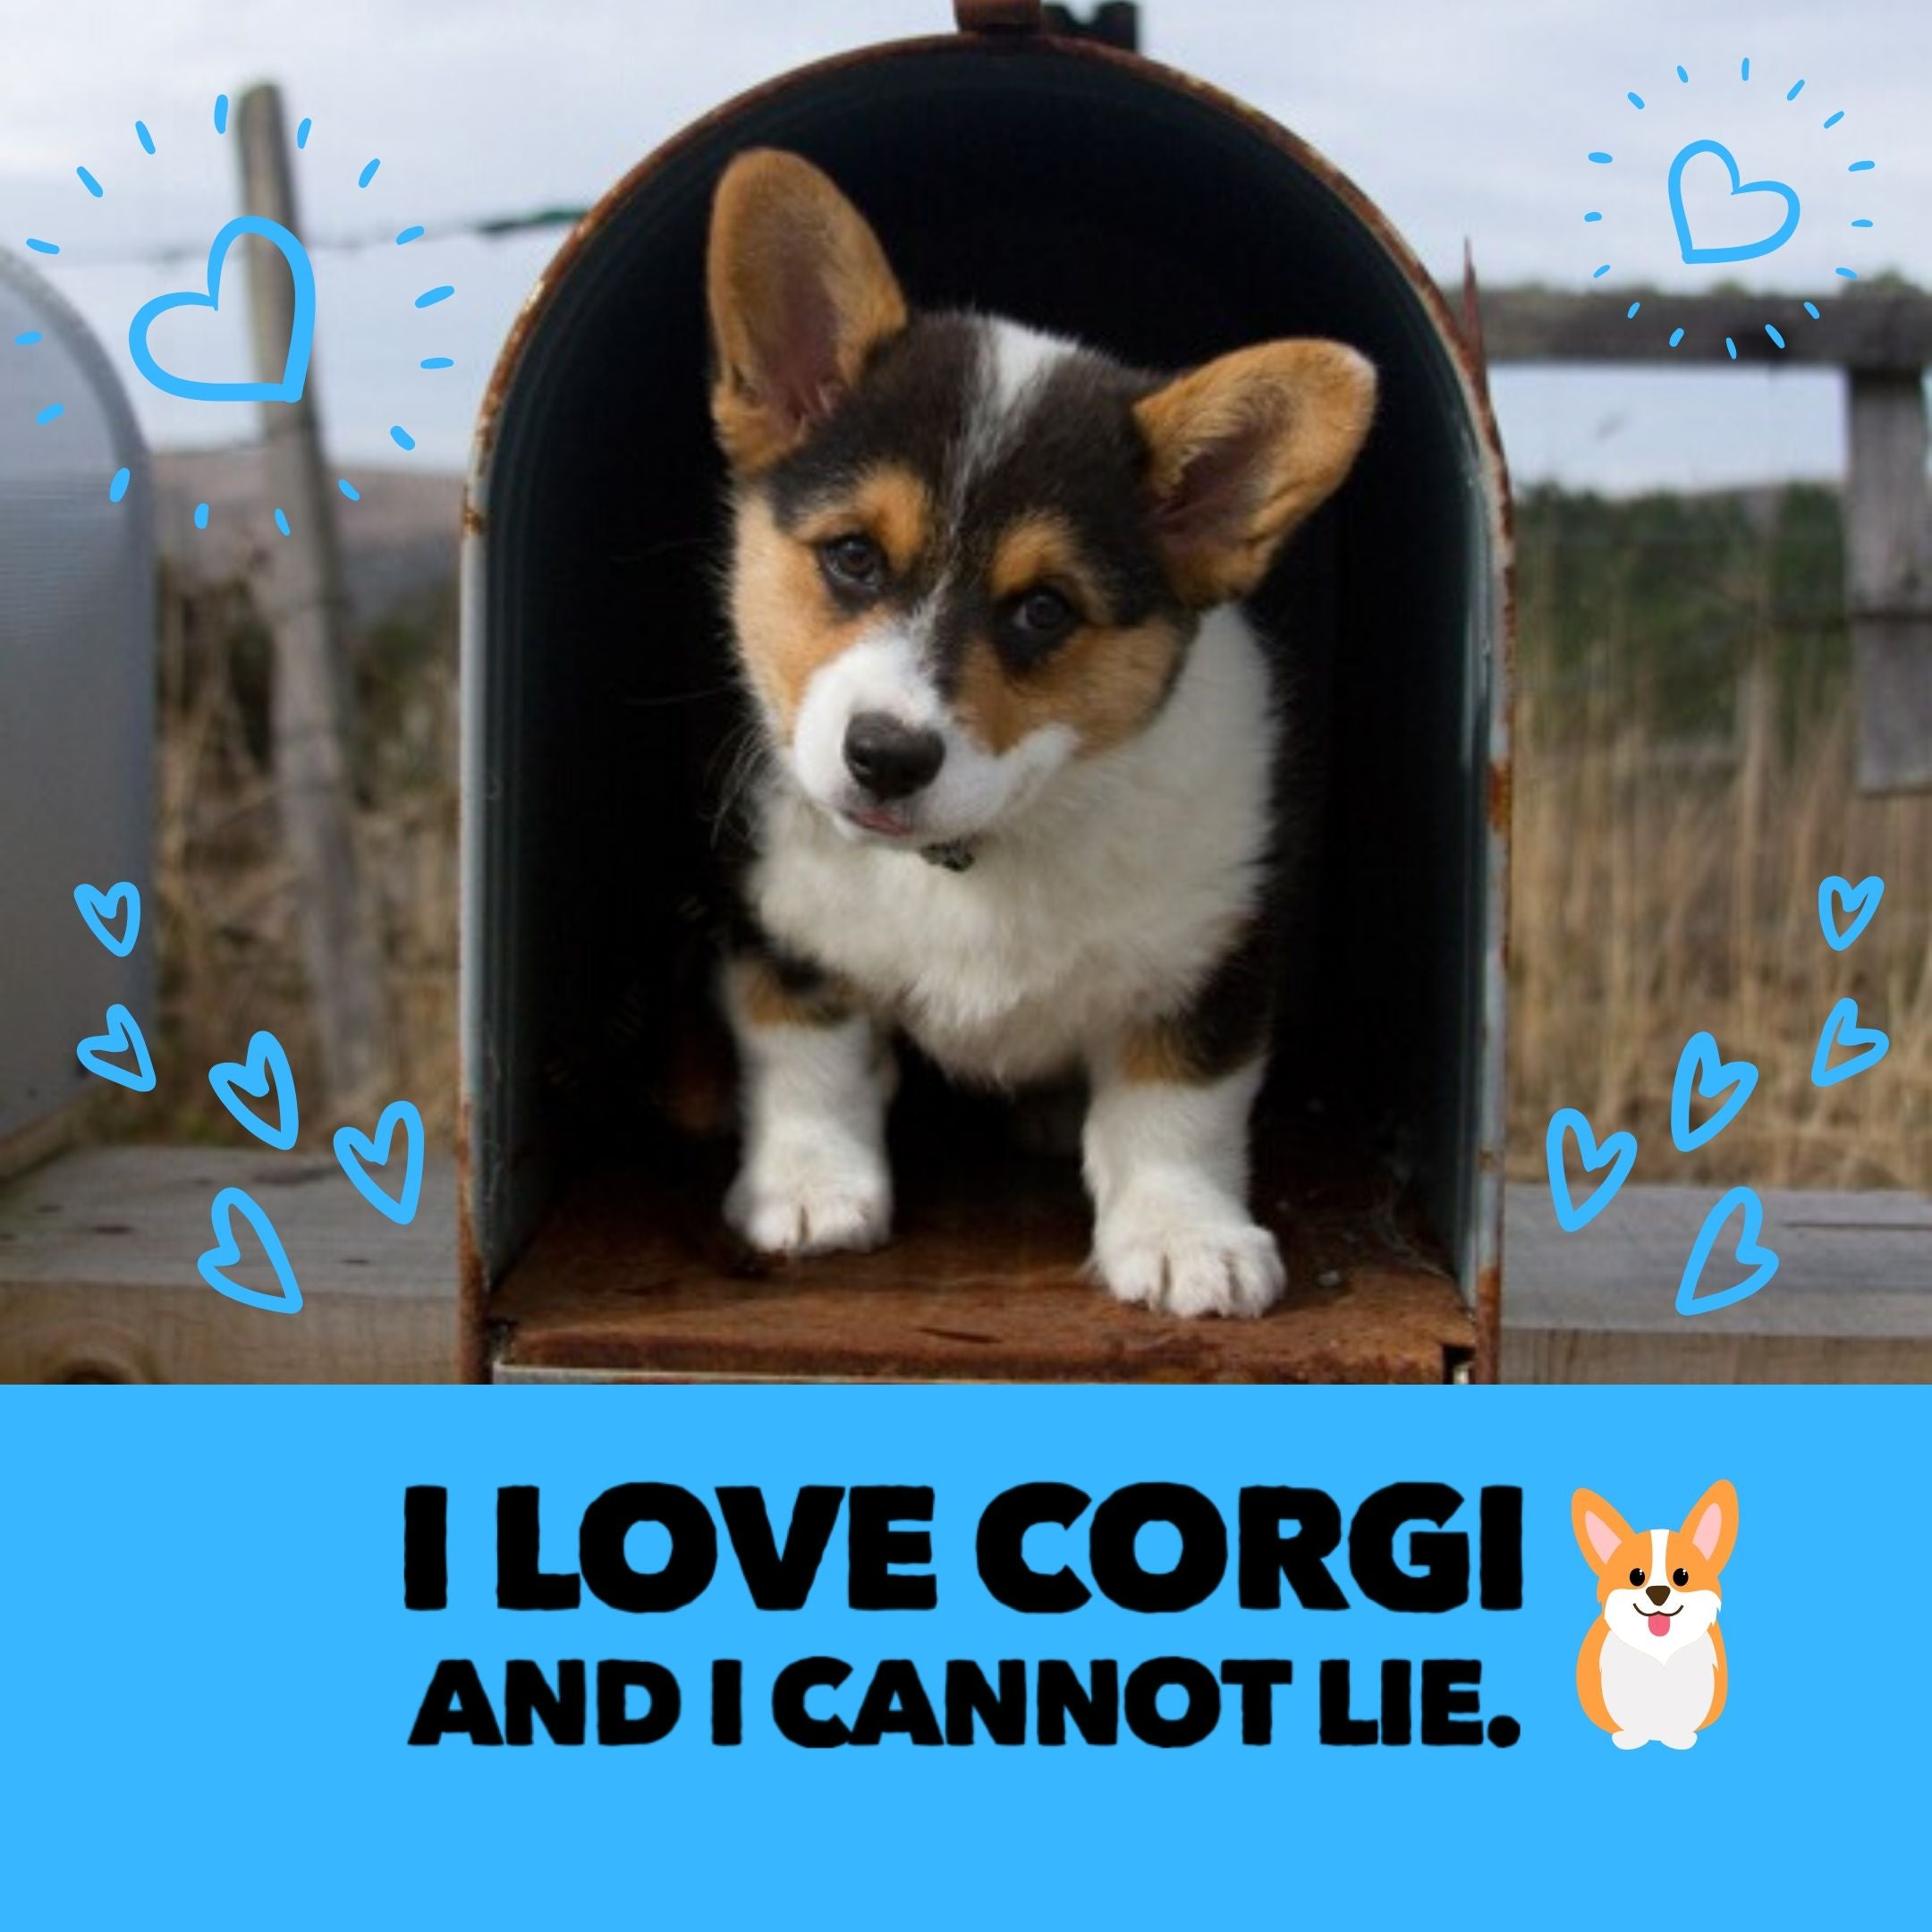 I love Corgis and I cannot lie.